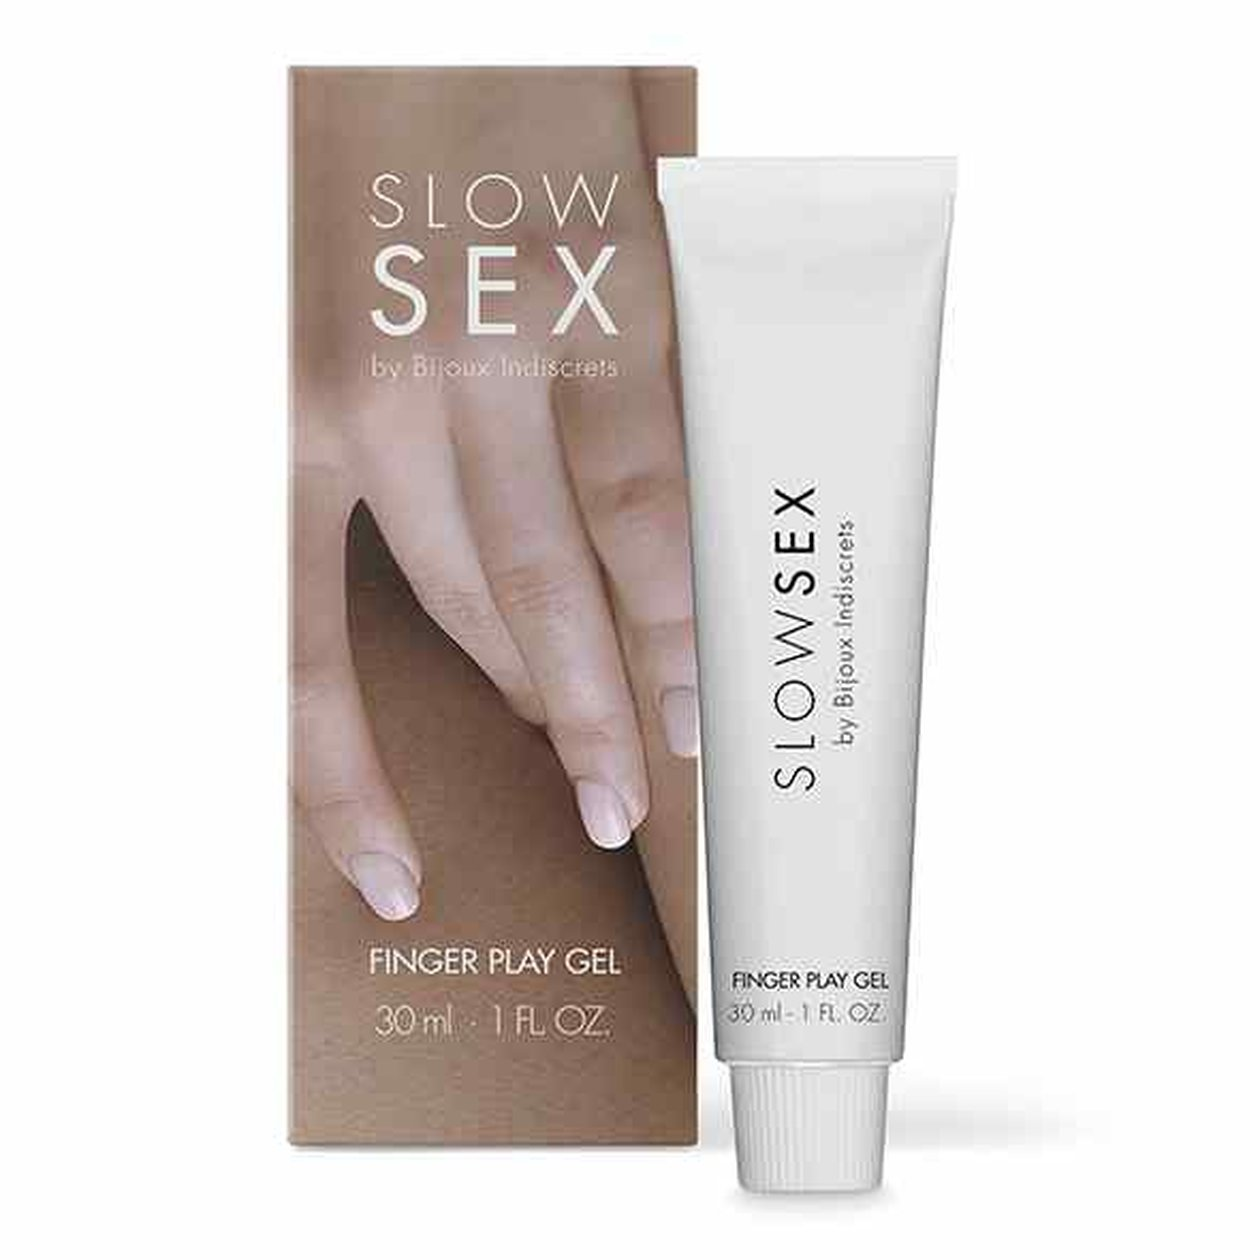 Bijoux Indiscrets - Slow Sex Finger Play Gel